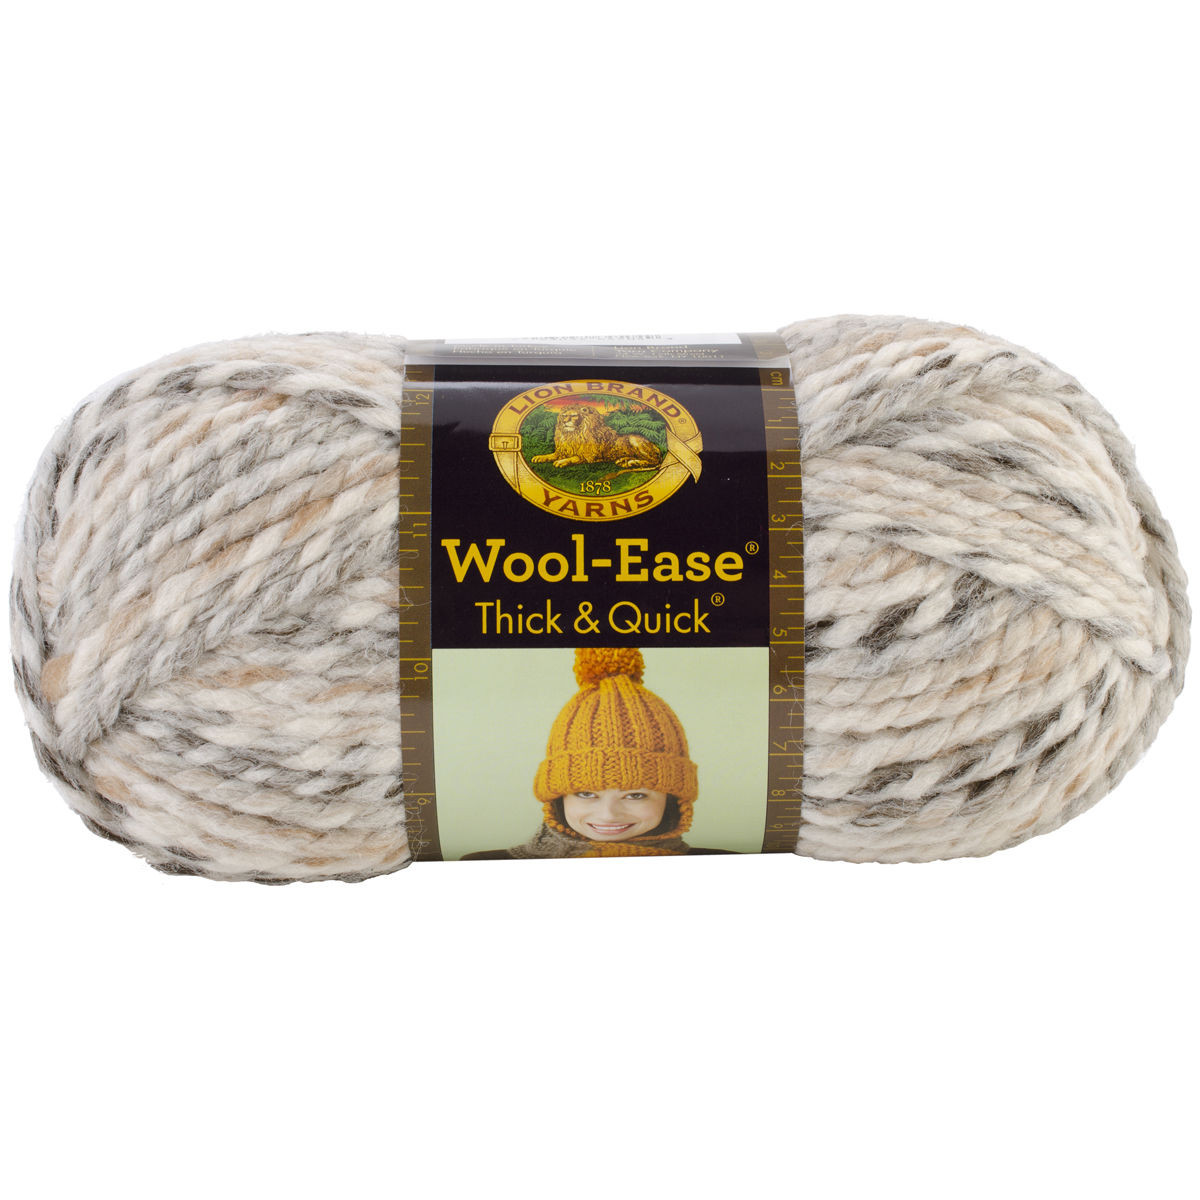 Wool Ease Thick and Quick Awesome Wool Ease Thick & Quick Yarn Sandstone Of Adorable 45 Photos Wool Ease Thick and Quick